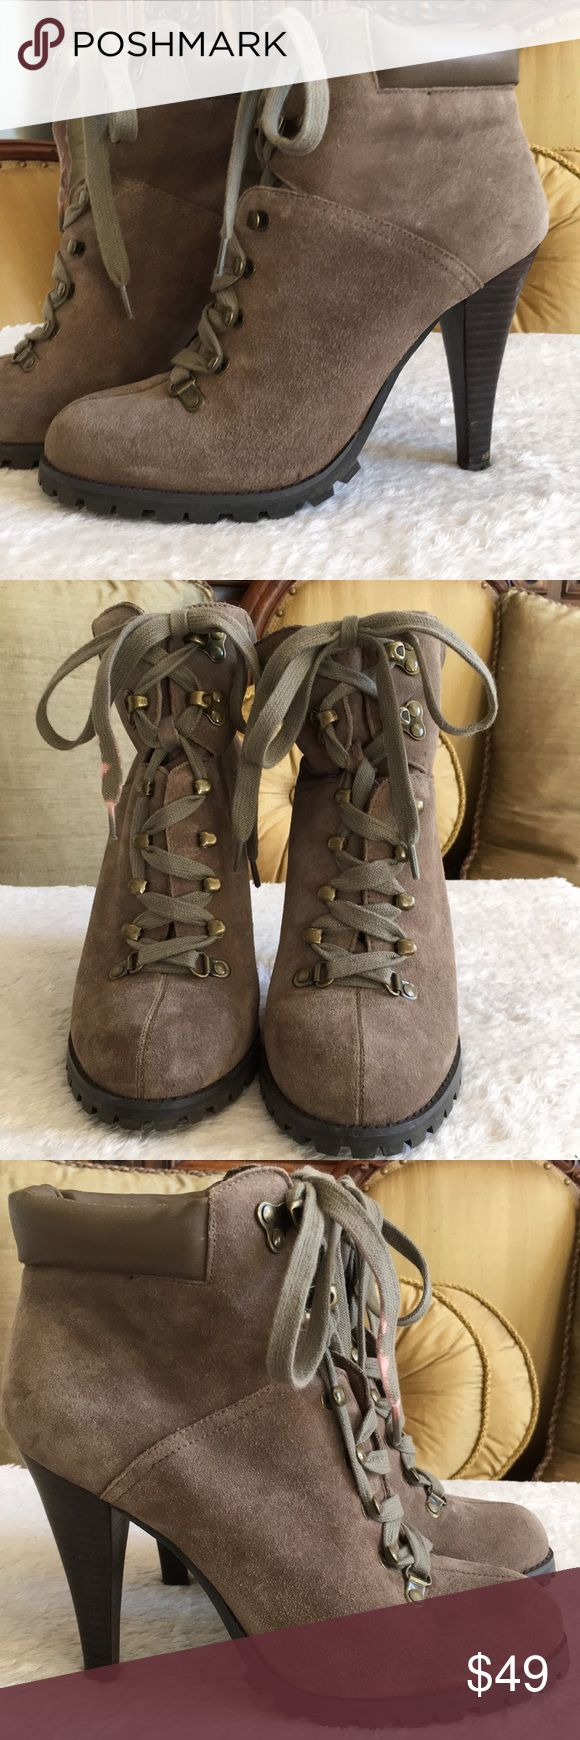 """Jessica Simpson Baxter boots 💟Good condition, 7.5"""" total boot height and 4"""" heels. The your conference of the boot is adjustable when you tie it at the top.  One lease got bleach on it, can be replaced. There are some minor marks on one of the heels. Jessica Simpson Shoes Ankle Boots & Booties"""